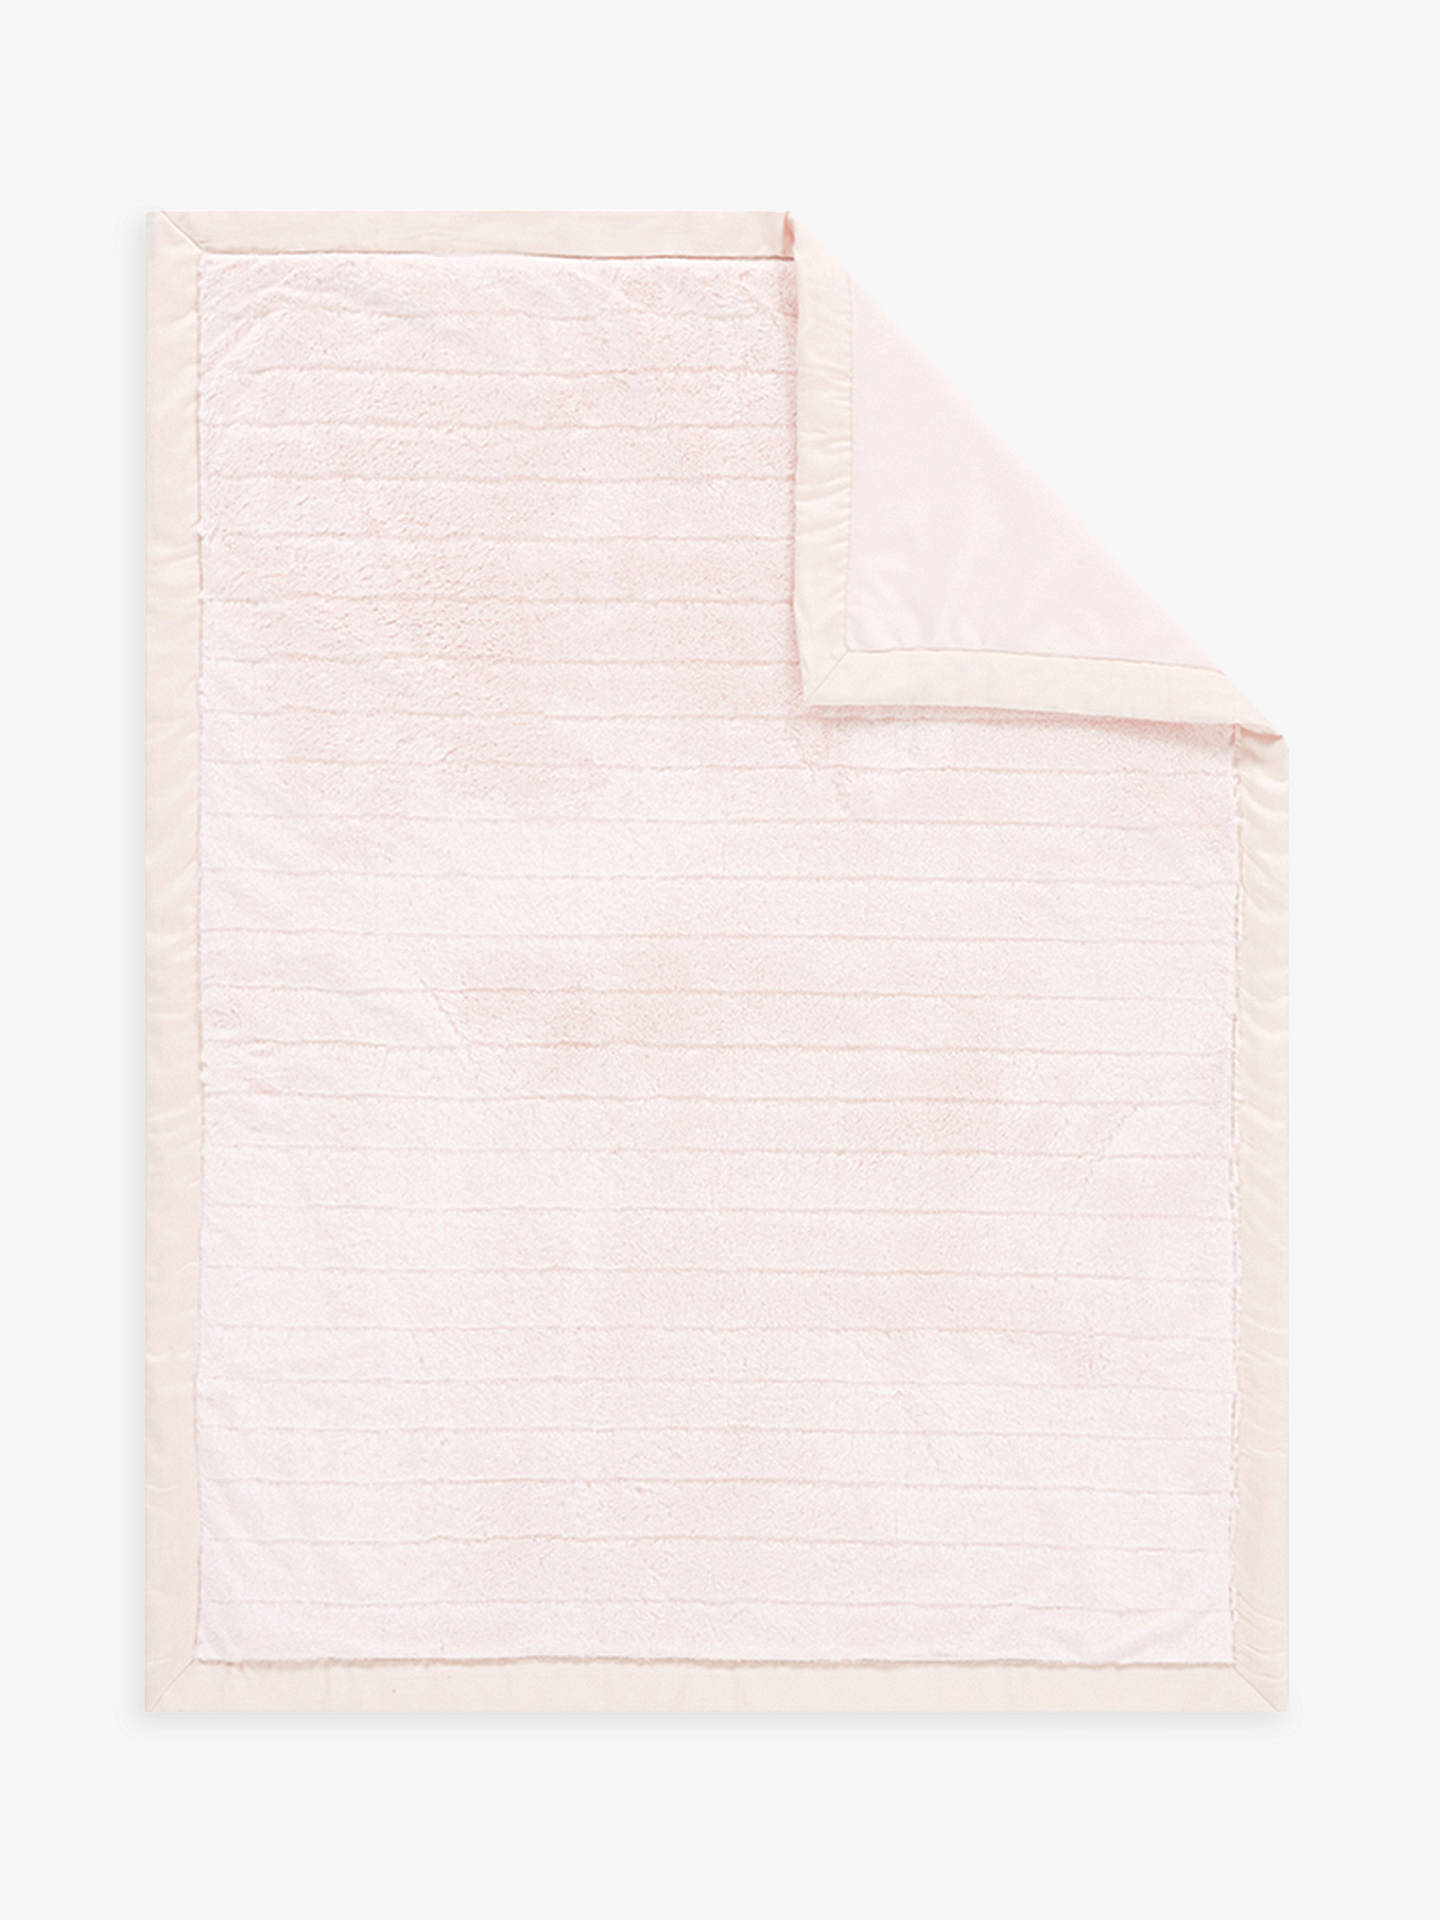 BuyPottery Barn Kids Channel Faux Fur Baby Blanket, Blush Online at johnlewis.com